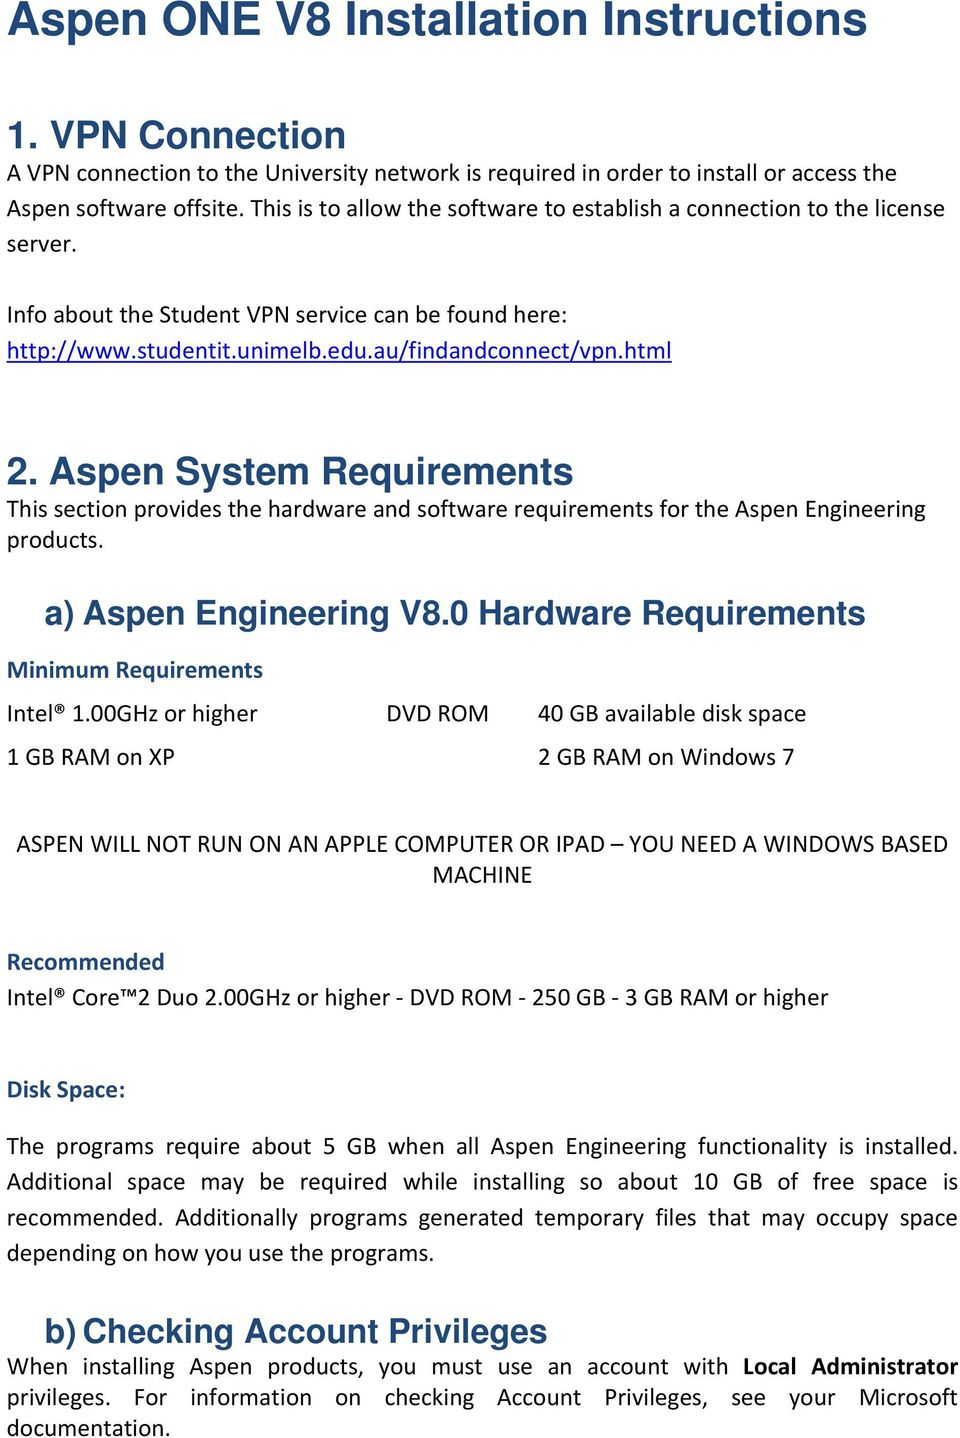 Aspen ONE V8 Installation Instructions - PDF